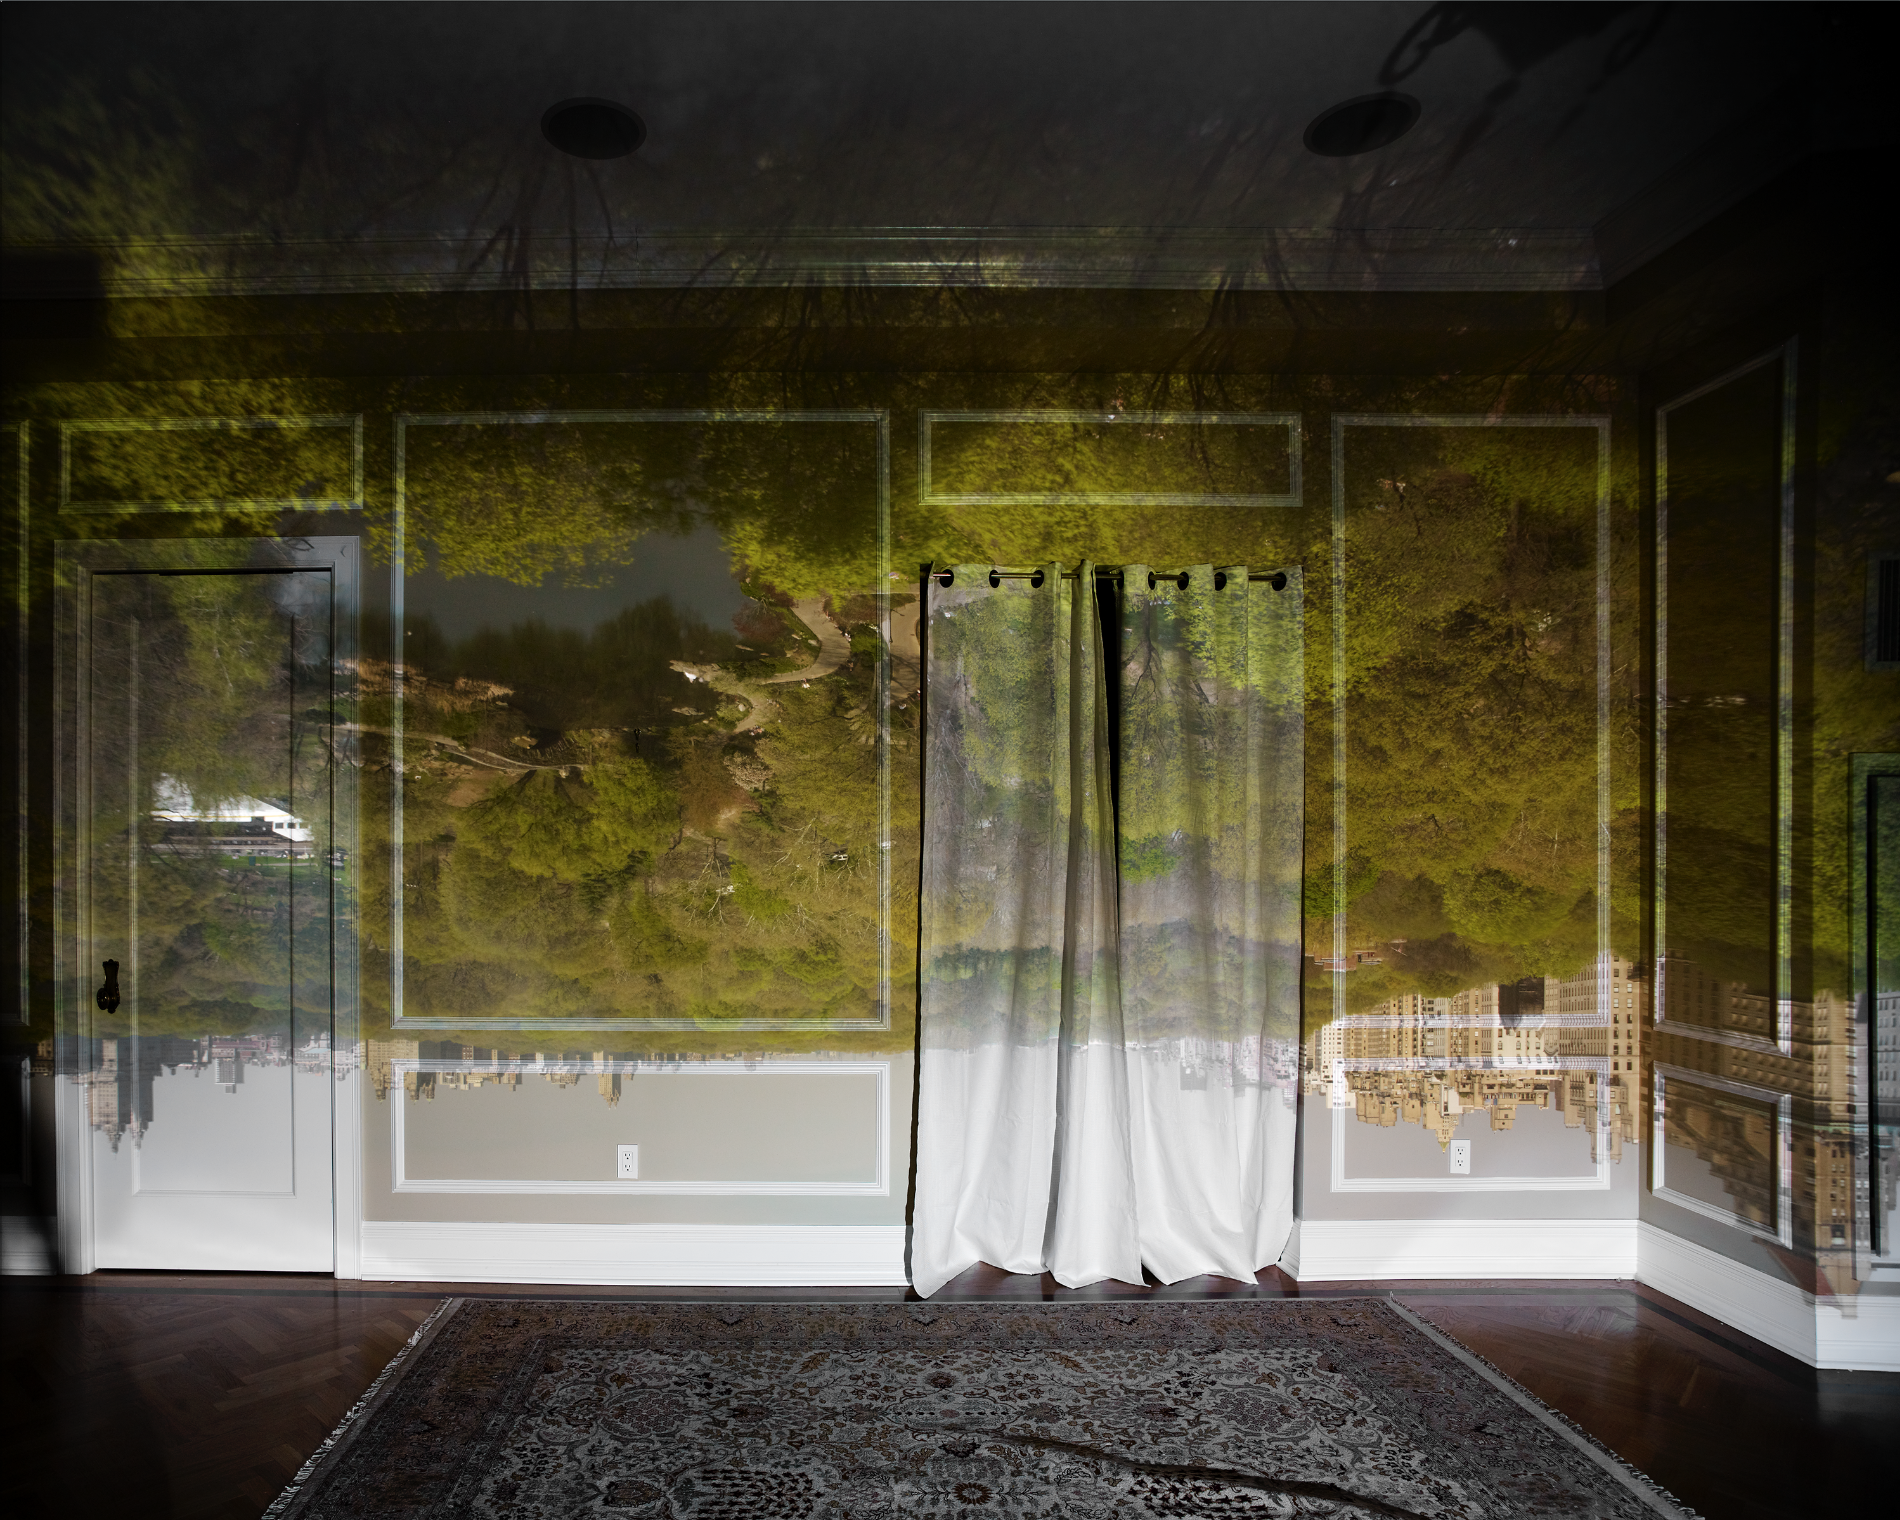 Abelardo Morell, Camera Obscura:  View of Central Park Looking North  -  Spring , 2010.